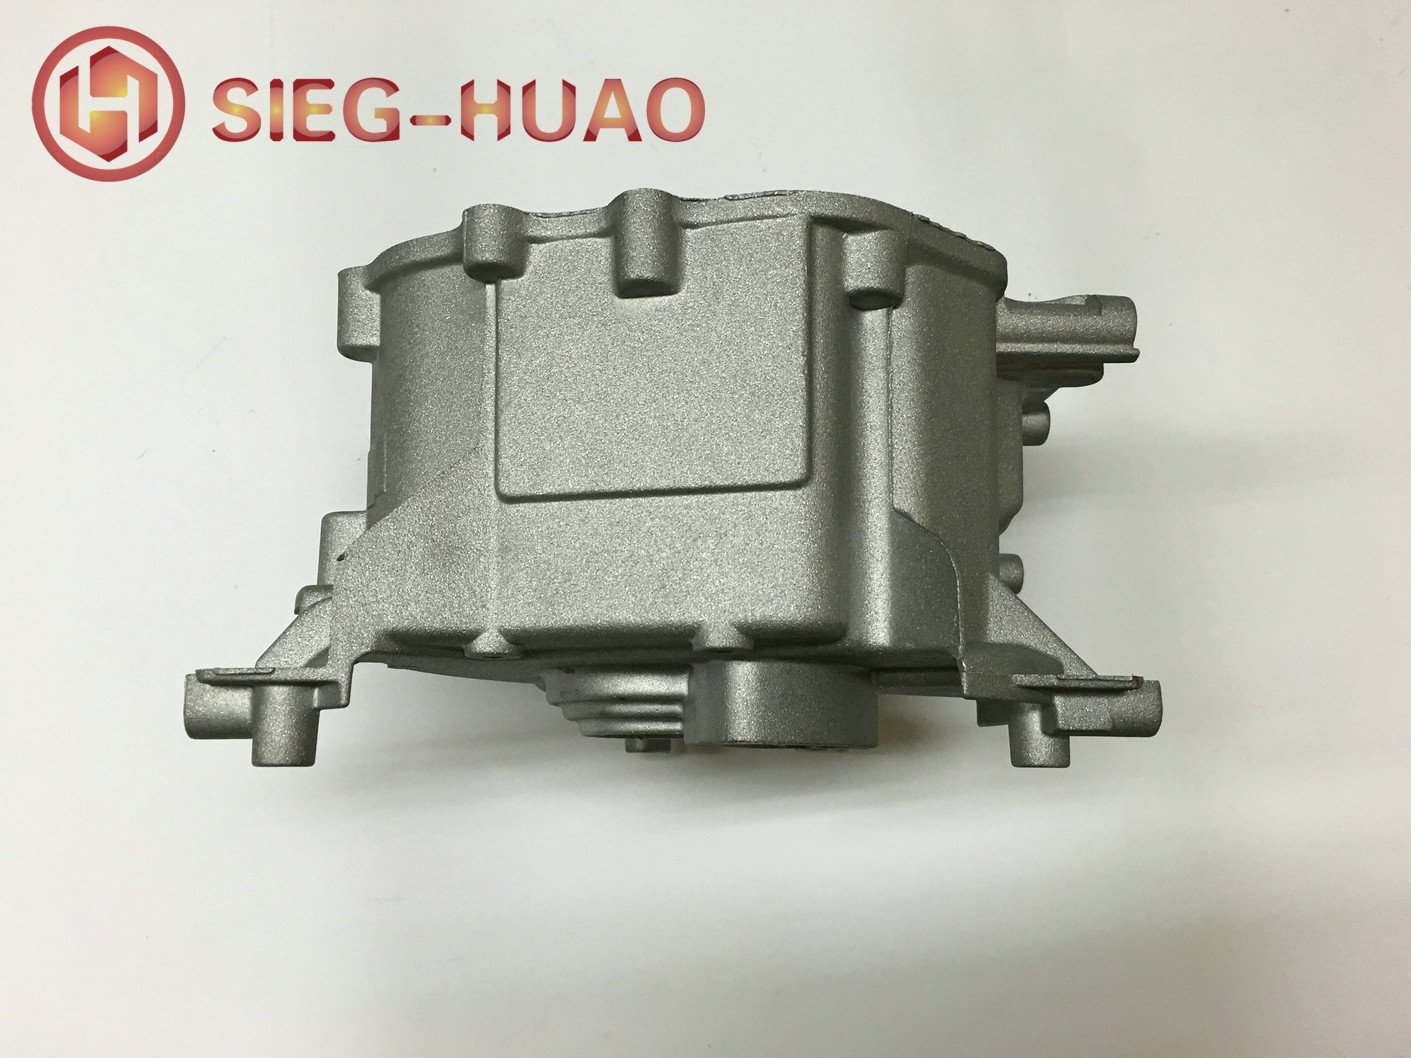 Magnesium Alloy Die Casting Powder Coated Motor Shell for Lawn Mower